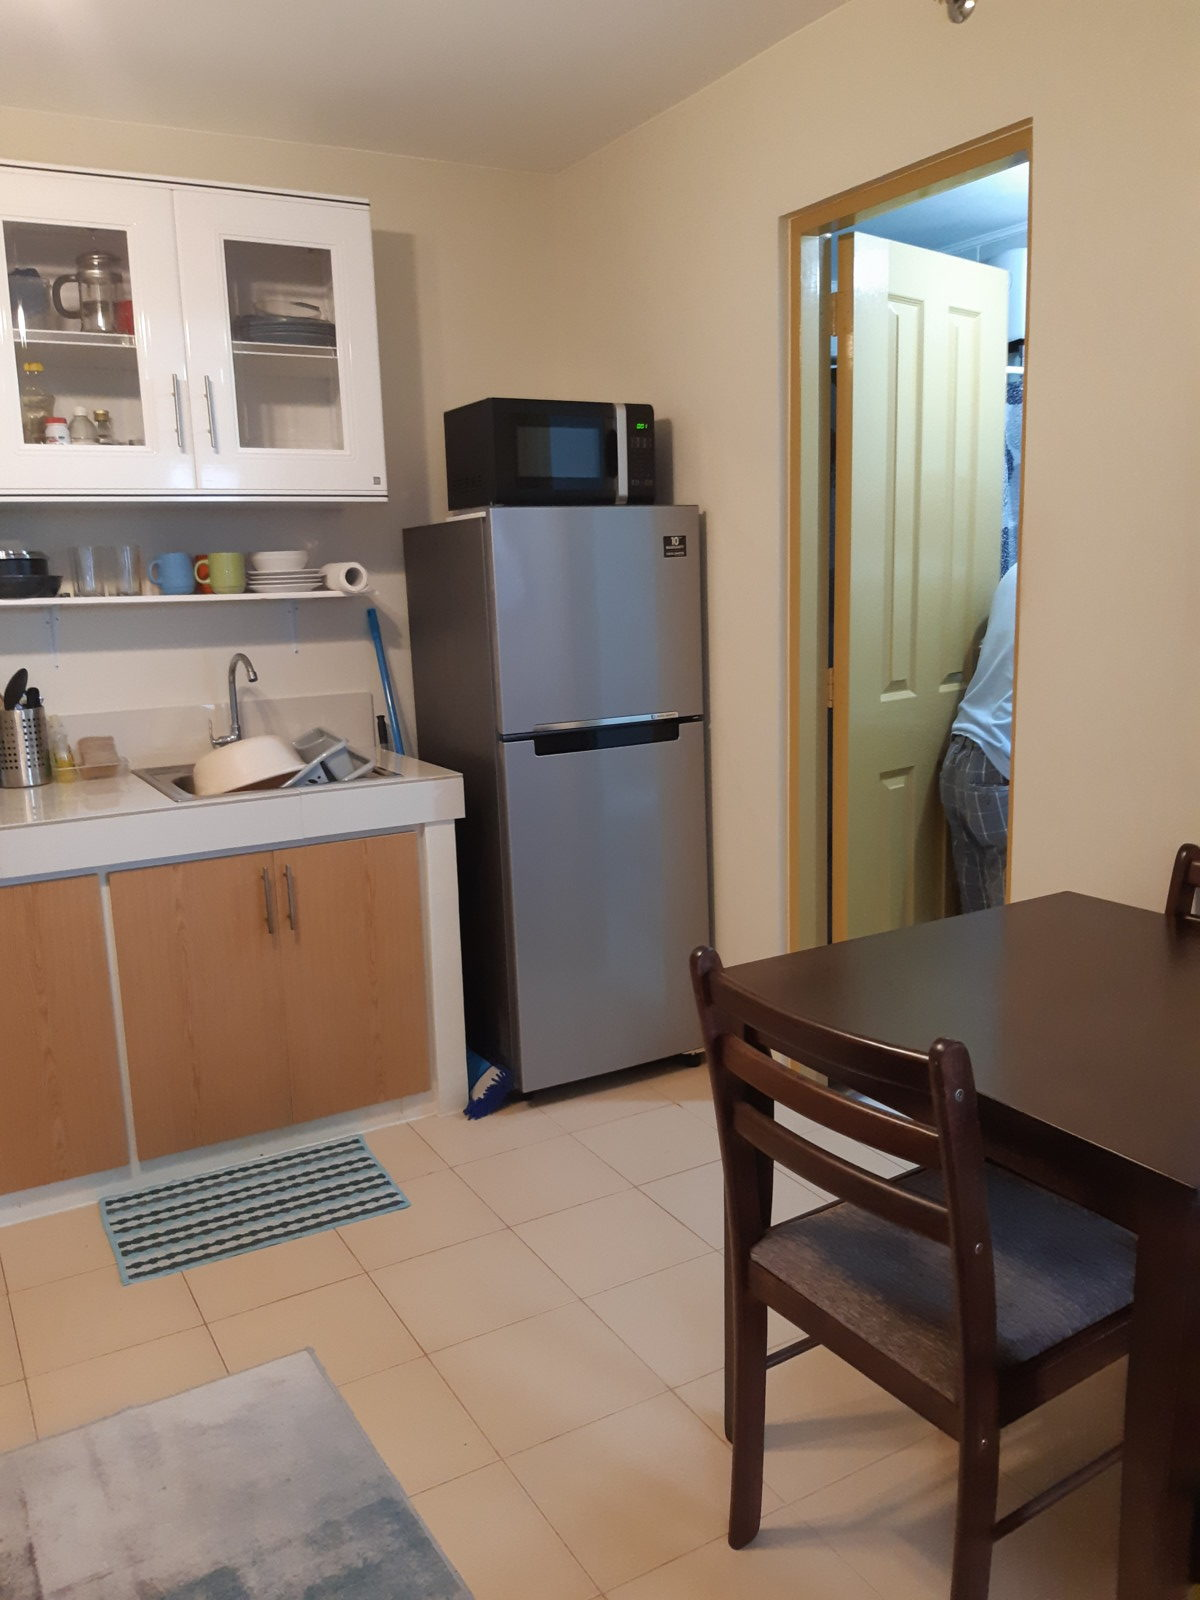 Condominium Unit for Sale in Welcoming Dumaguete ID#14688